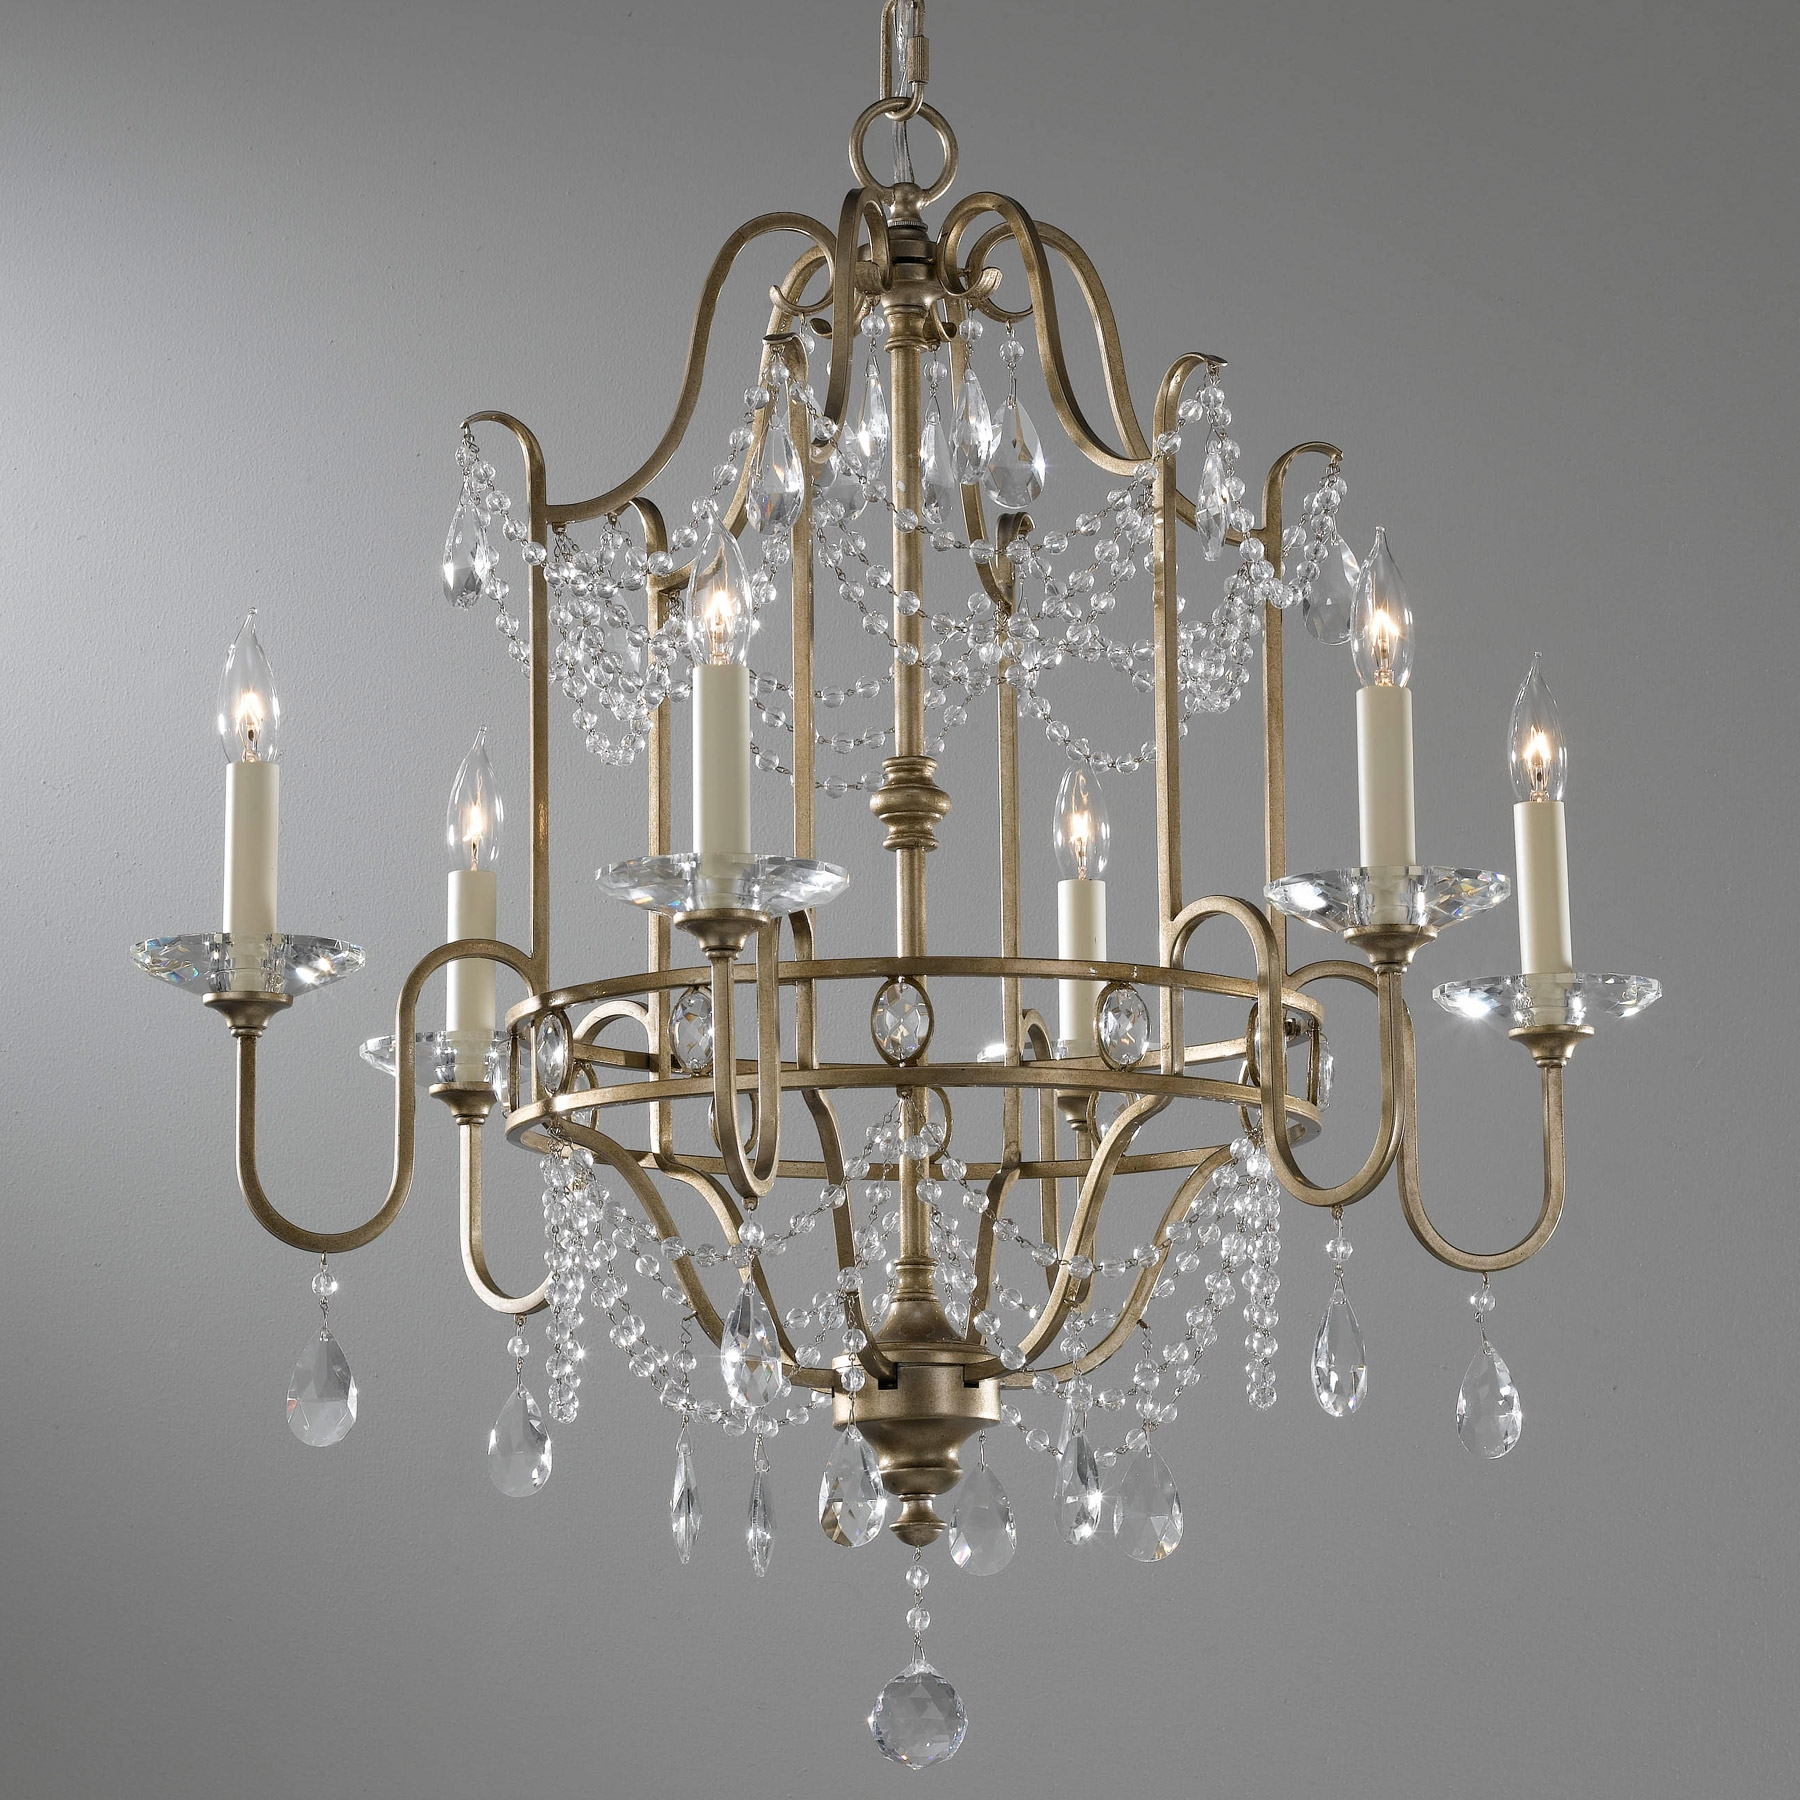 Feiss F24756gs Crystal Gianna Six Light Chandelier For Gianna Mini Chandeliers (Image 3 of 25)